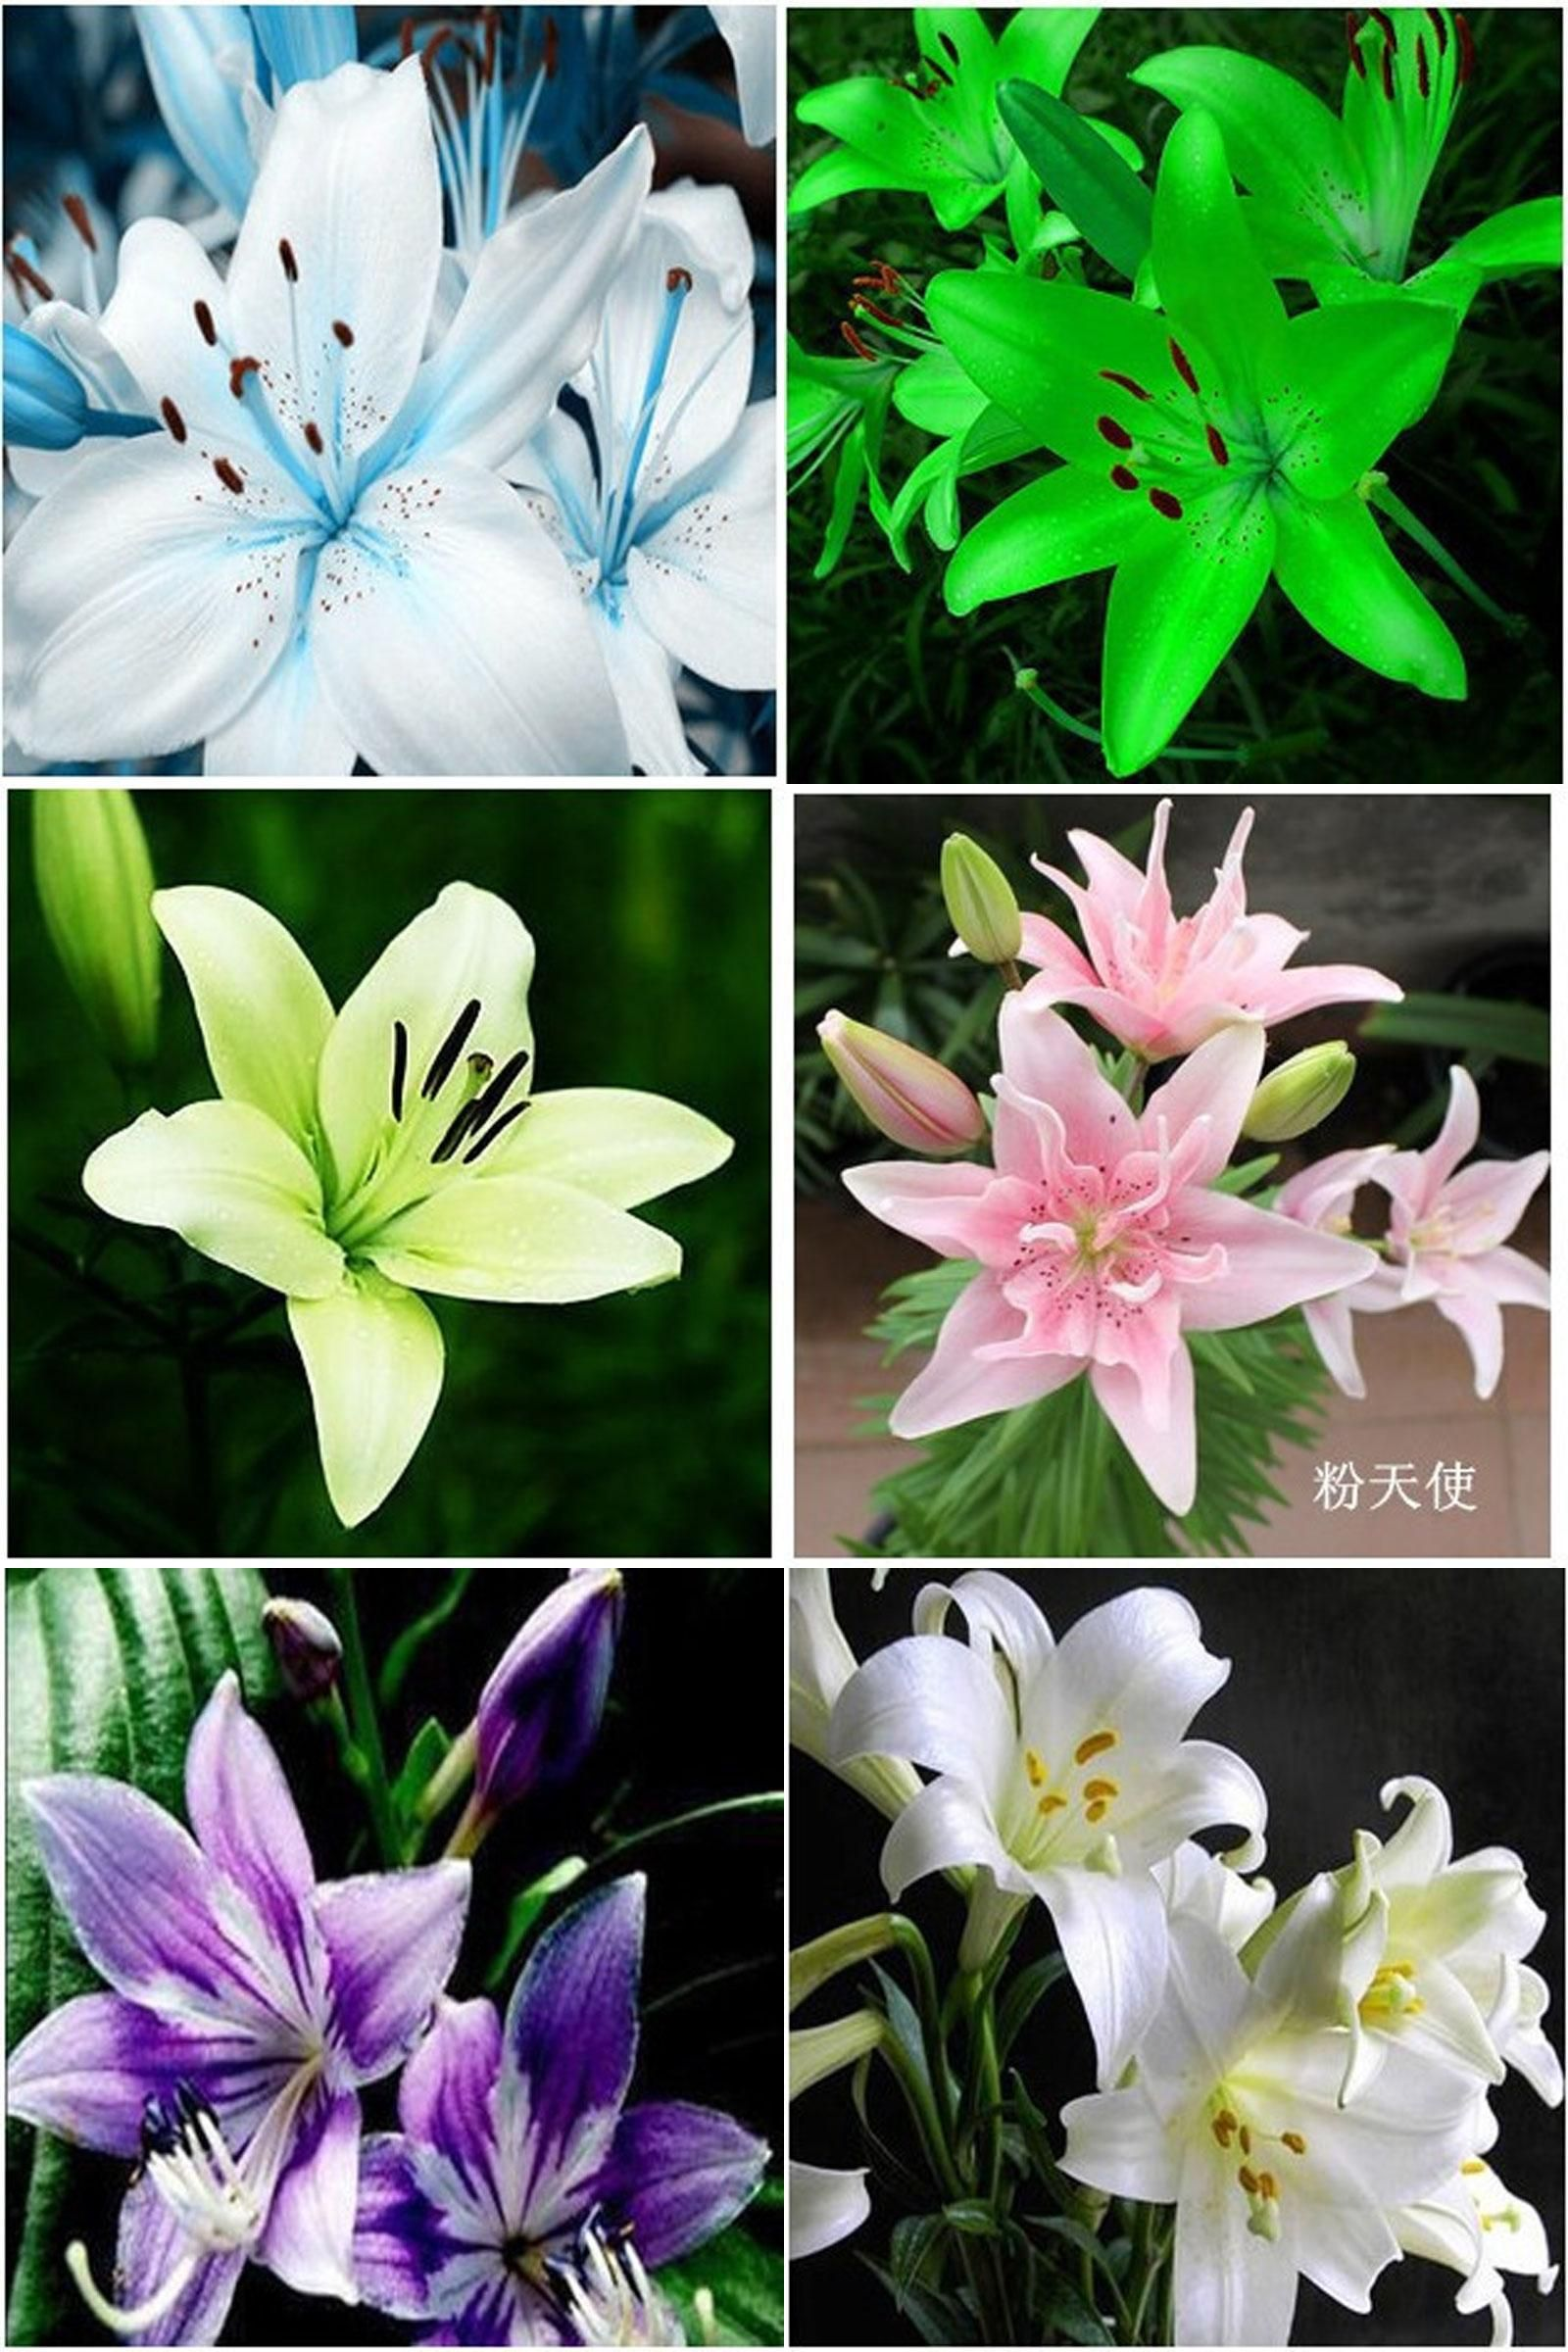 Visit to buy lily bulbs cheap perfume lily seeds yellow white red visit to buy lily bulbs cheap perfume lily seeds yellow white red izmirmasajfo